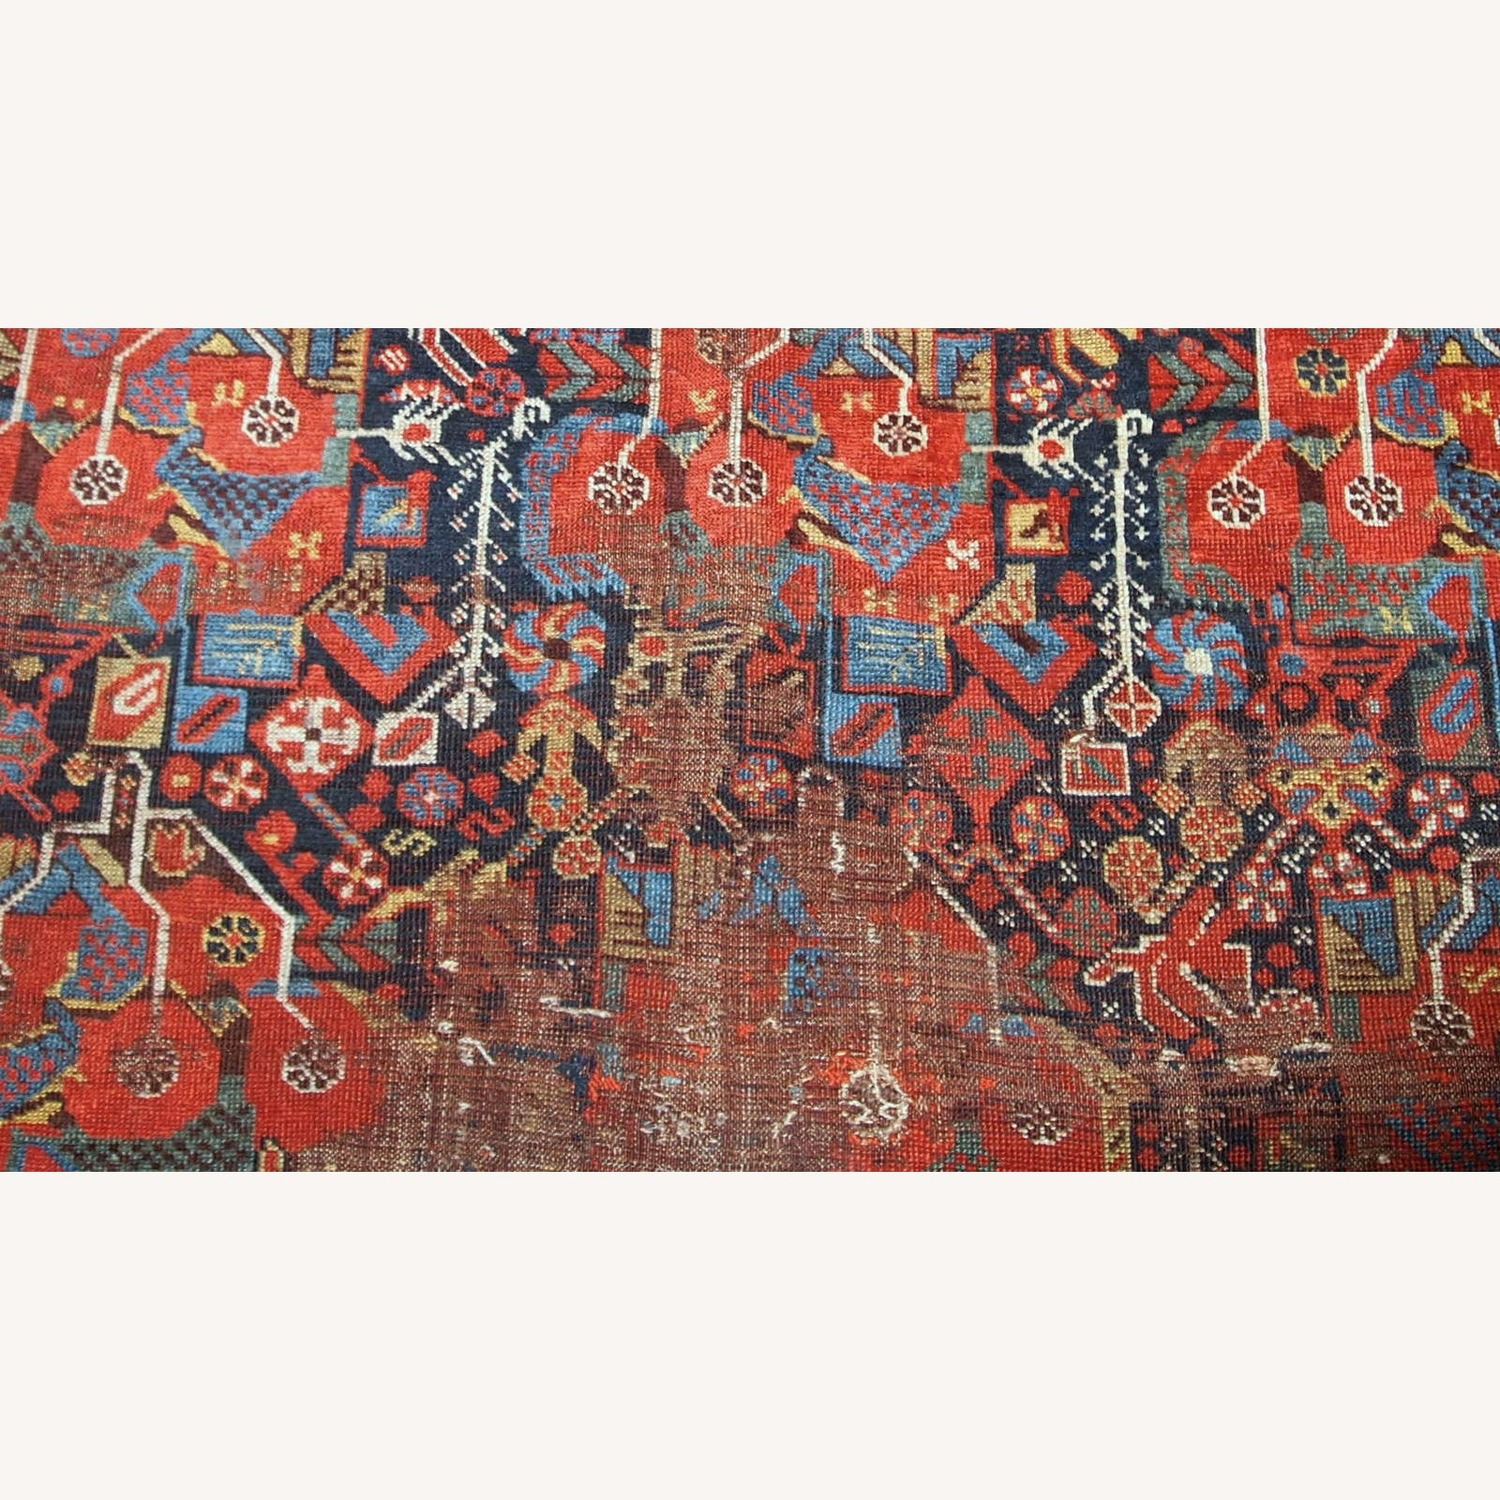 Handmade Antique Collectible Persian Khamseh Rug - image-2